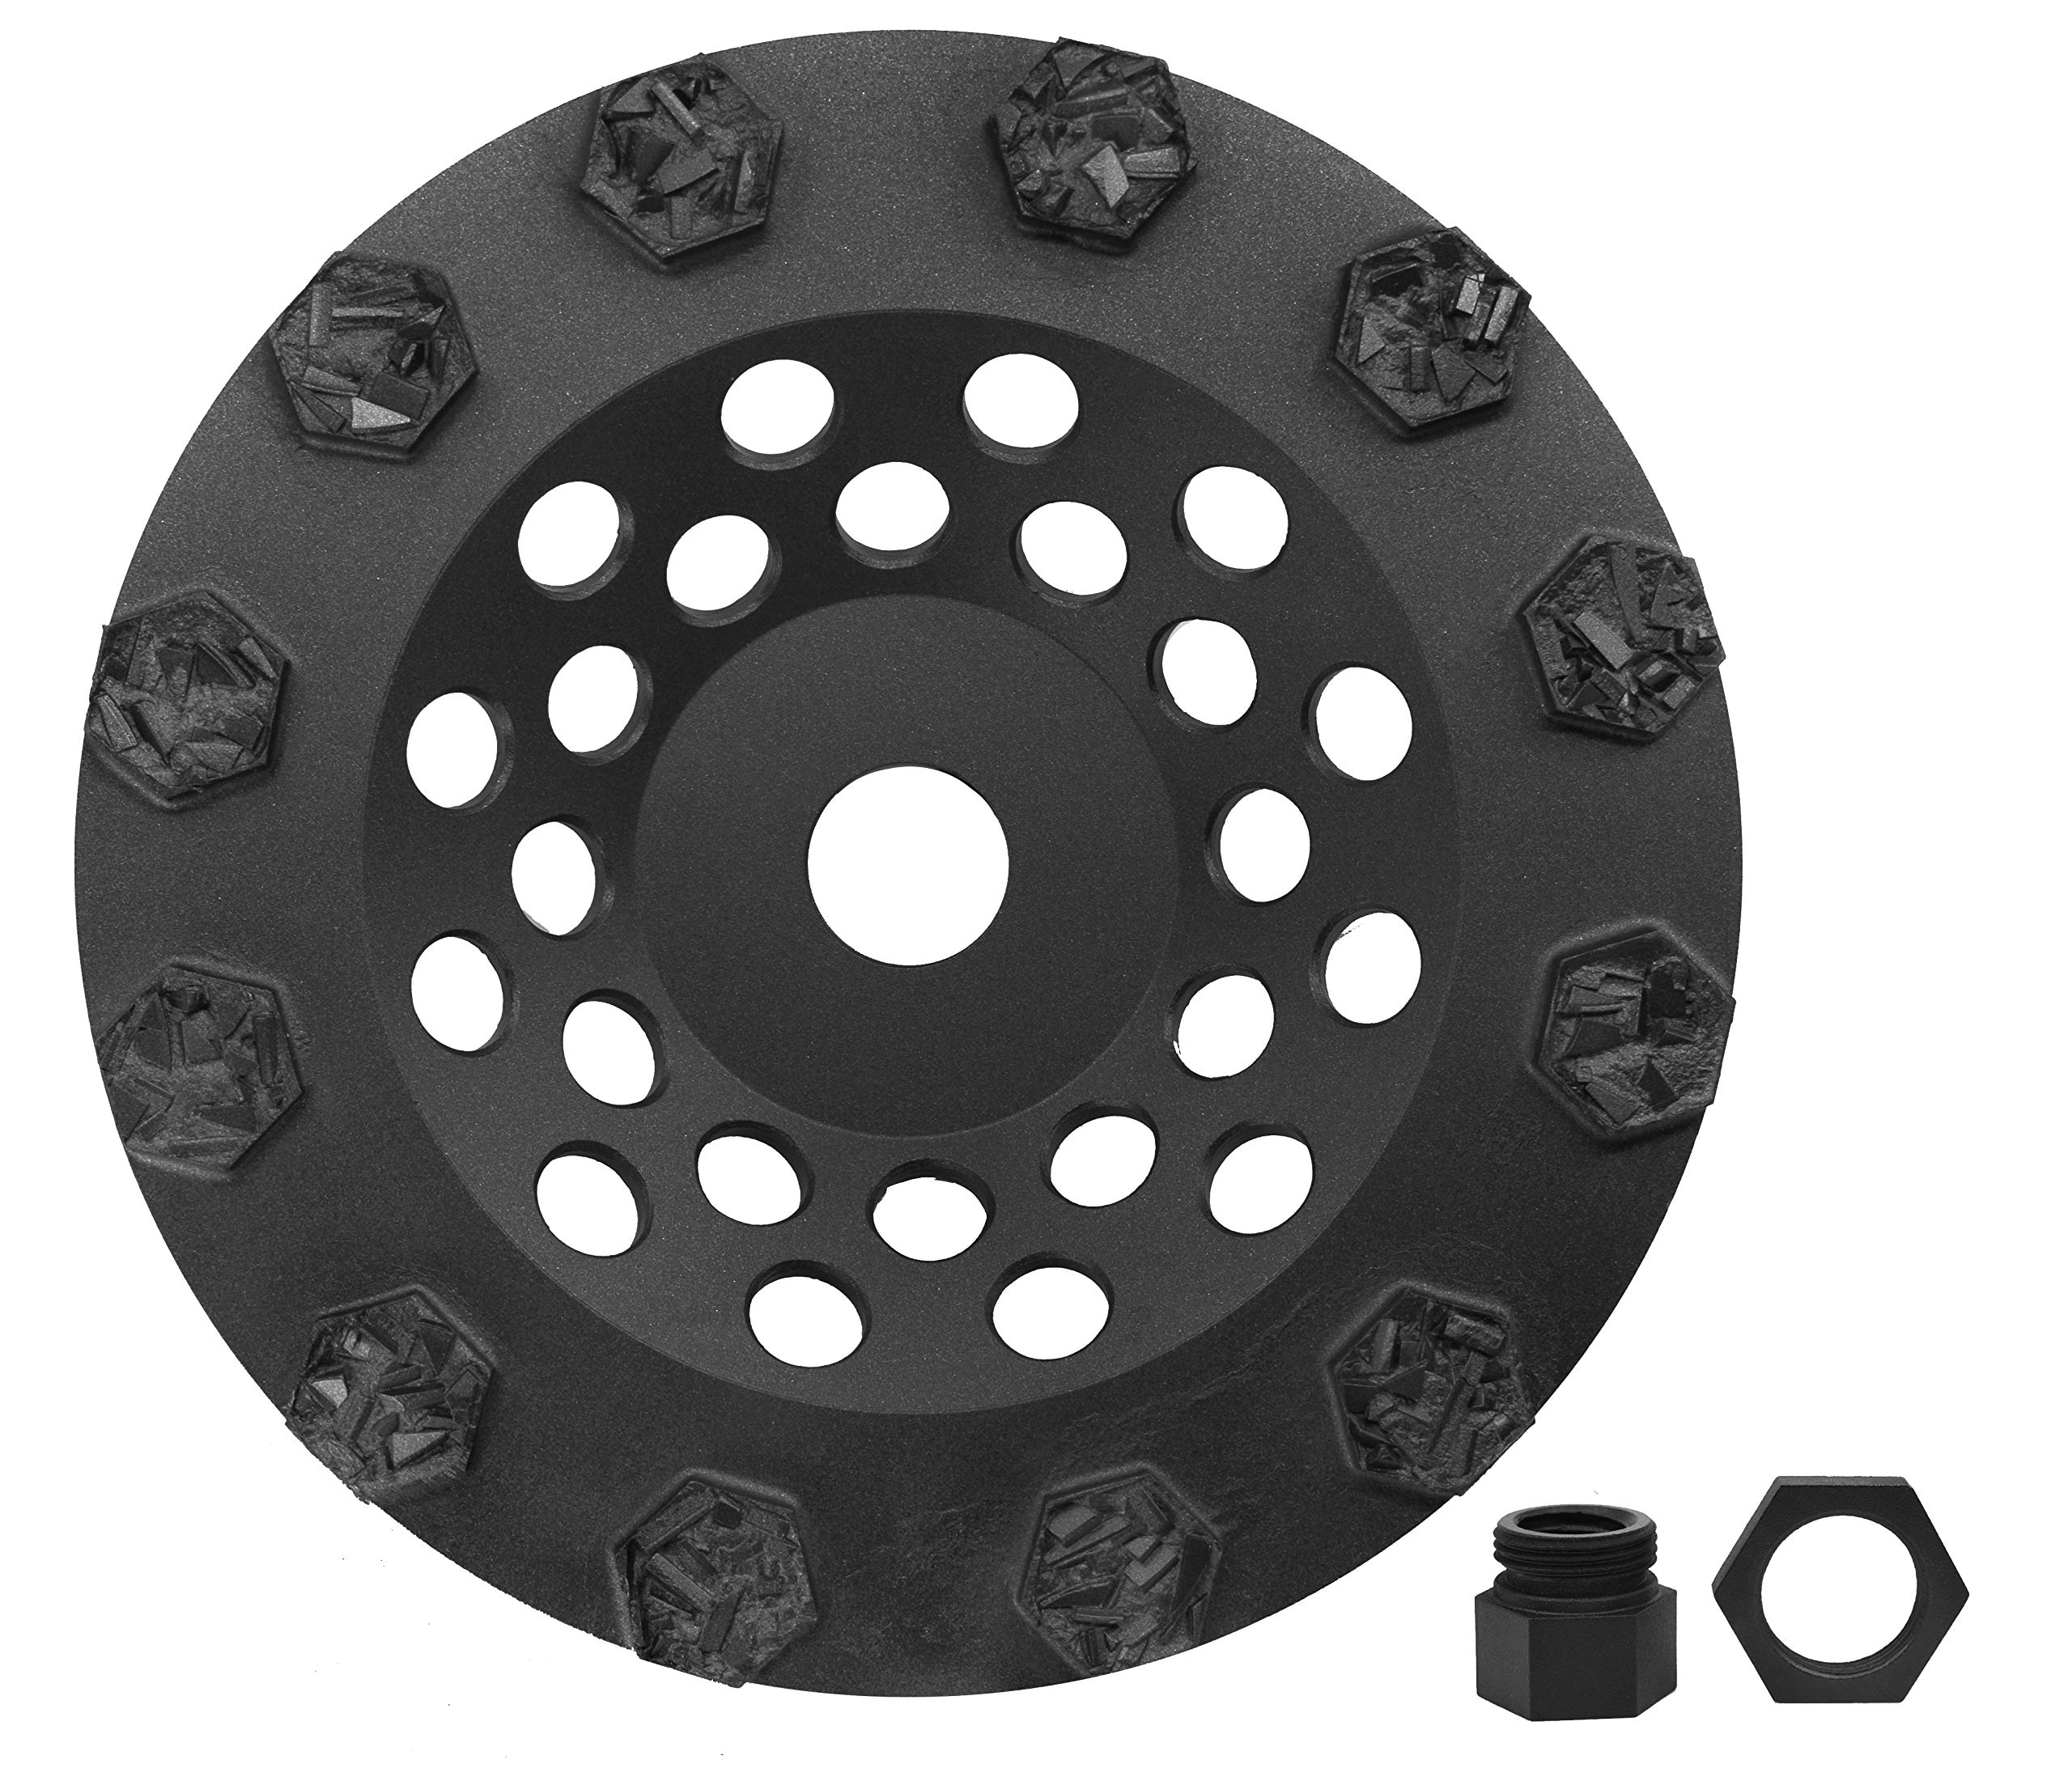 Split PCD Cup Wheel & 5/8''-11 Threaded Arbor - 12 Hexagonal Segments - 7'' Size - Dragon Tooling